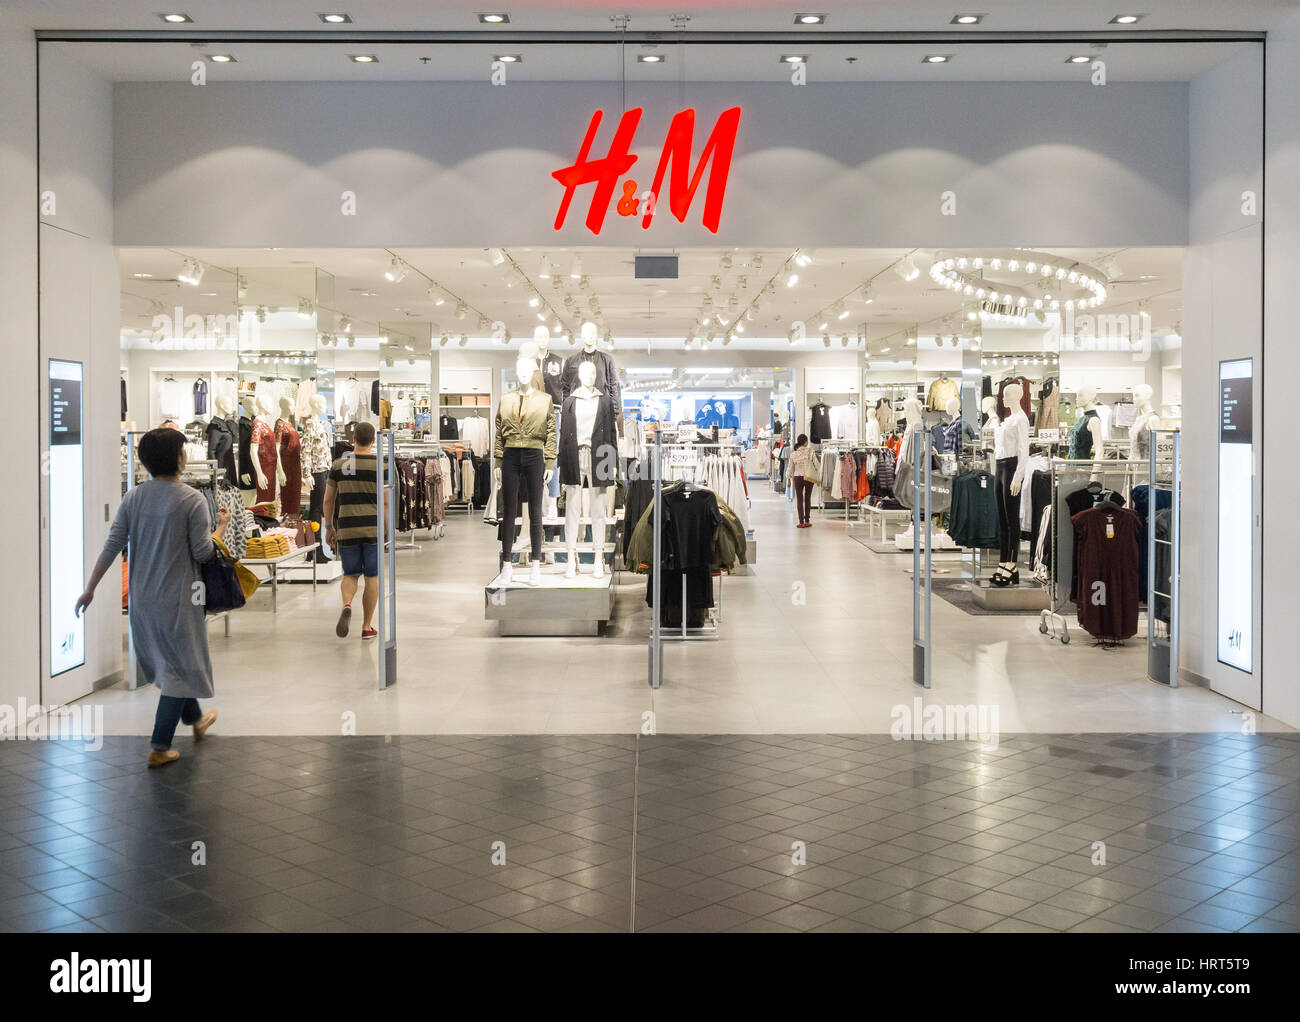 Shop; H&M; H&M The Upper Mall. H&M offers fashion and quality at the best price - with a broad and varied selection of clothing and coordinated accessories for women, men and children. Each of the collections includes a number of different concepts, with everything from modern basics to tailored classics and cutting-edge fashion: there is.